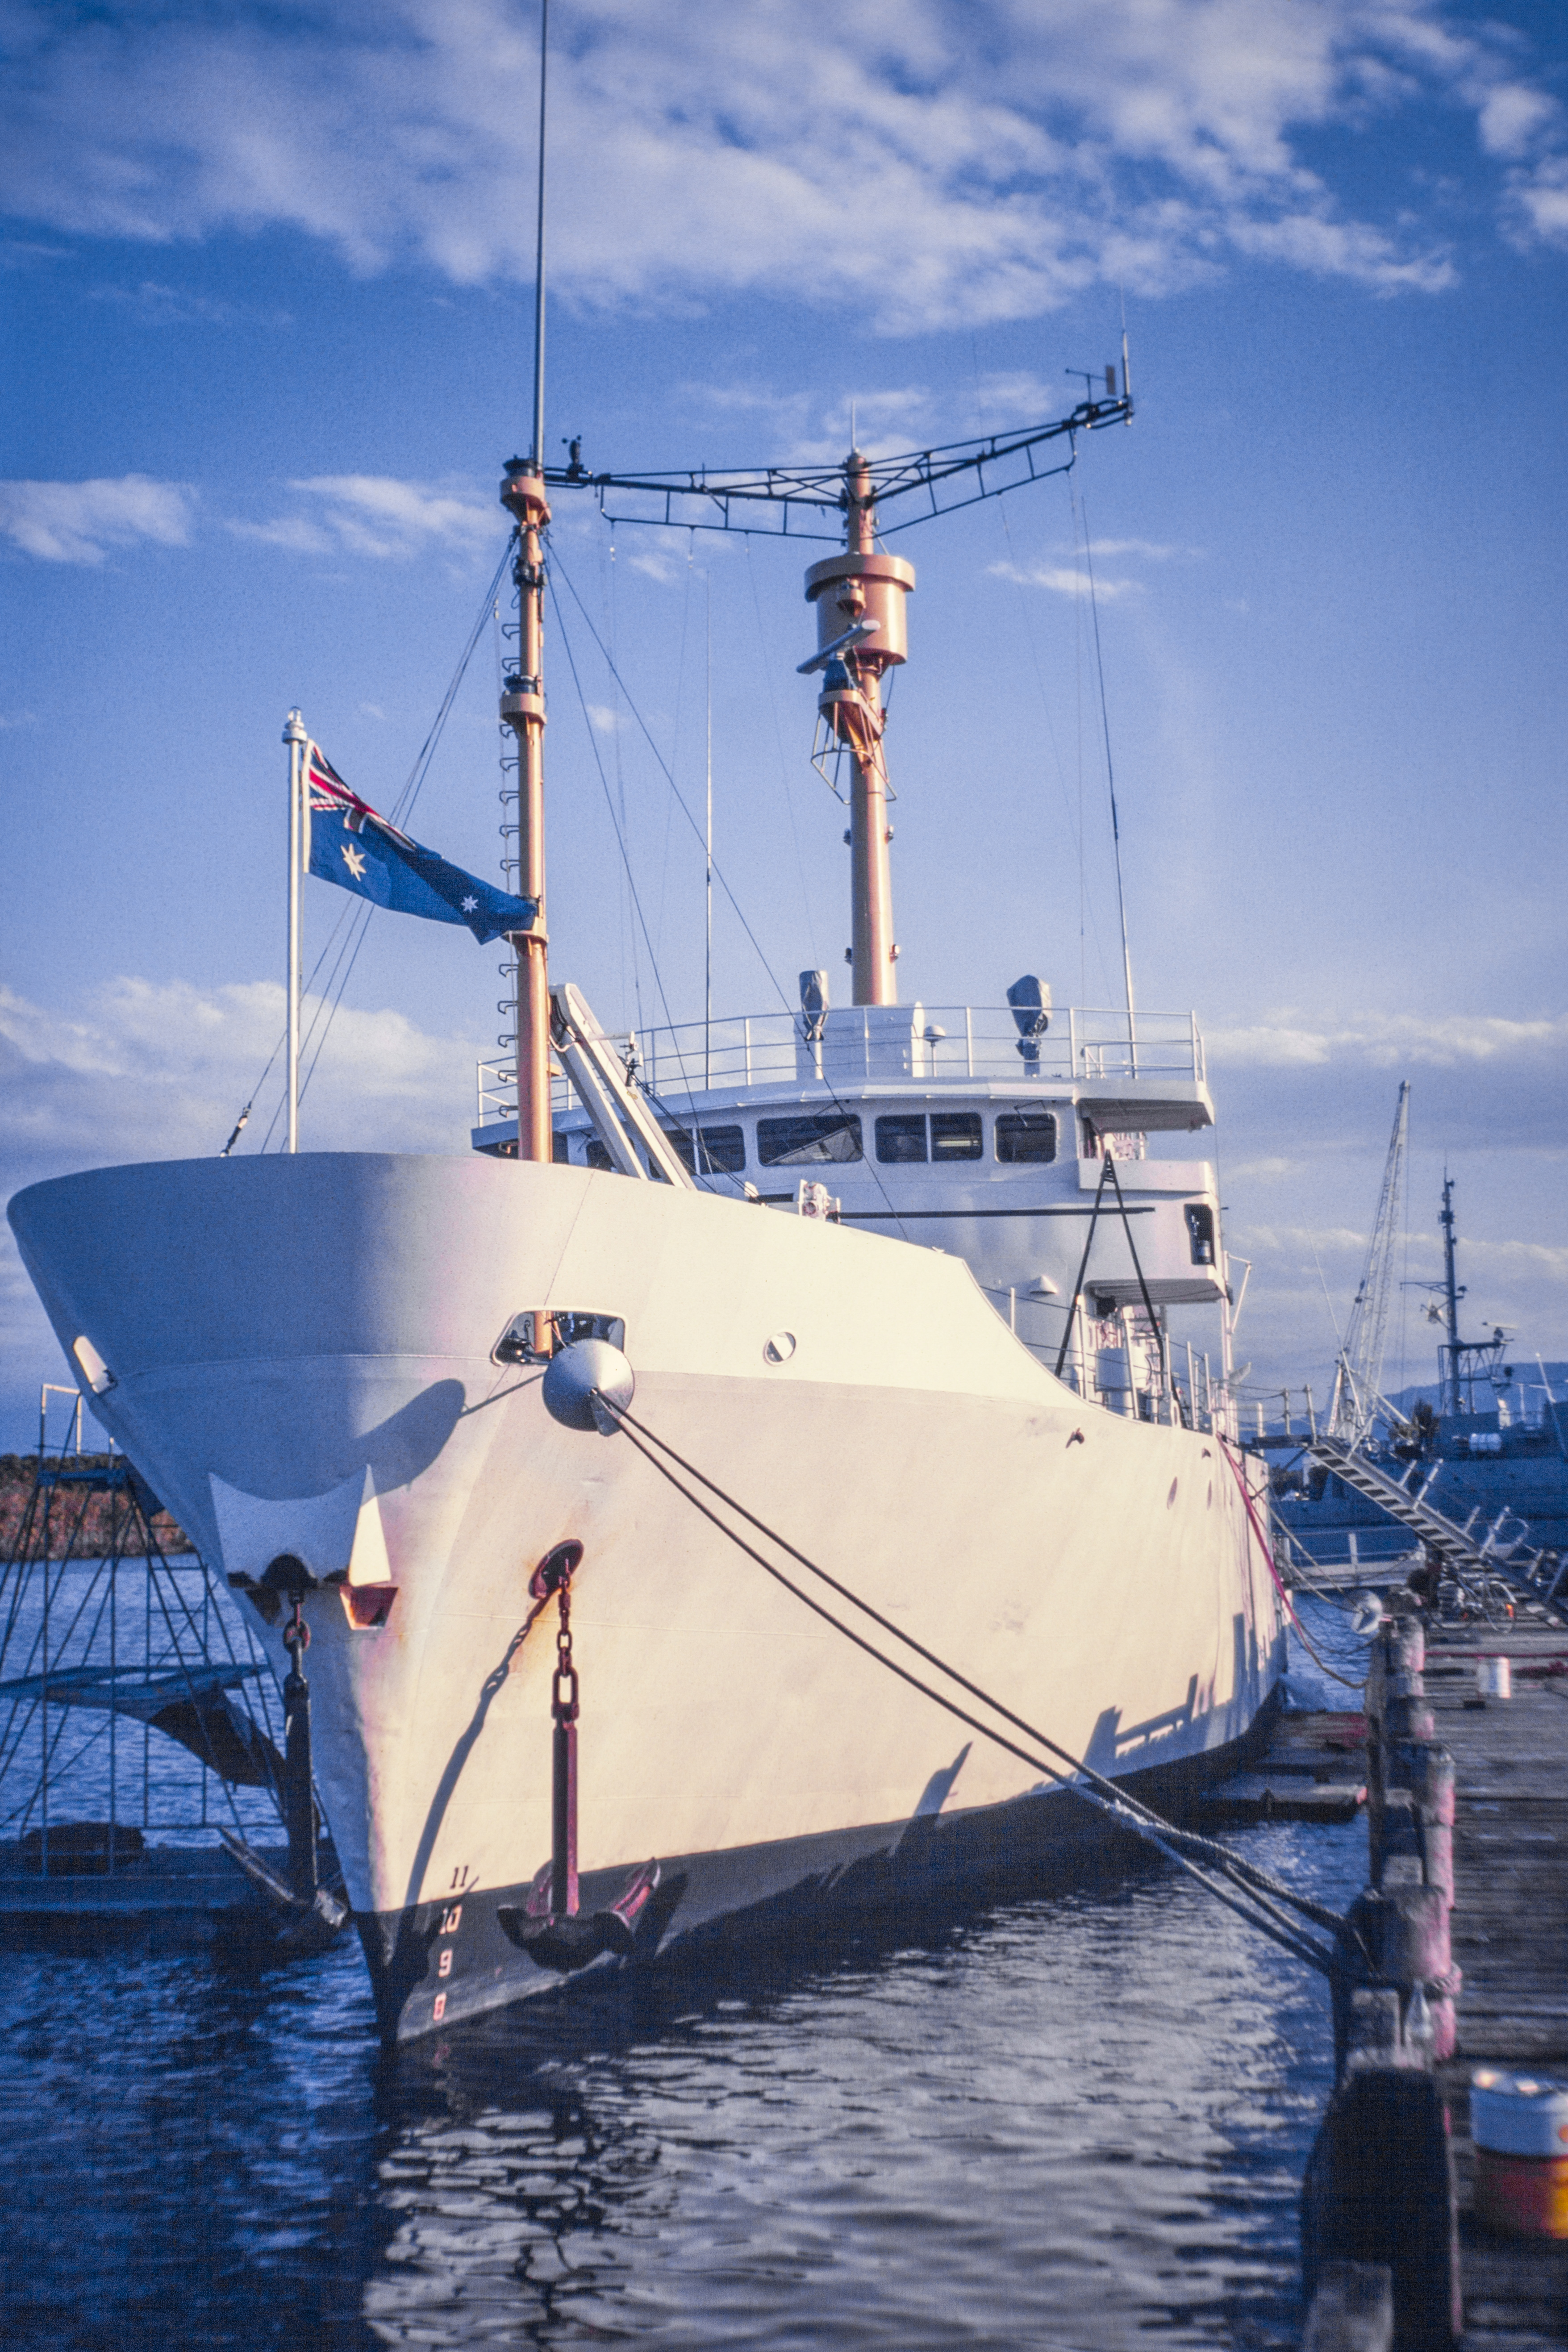 Alongside the fitting out wharf at NQEA preparing for refit. In Cairns, Queensland, Australia. Photo © Stephen Swayne